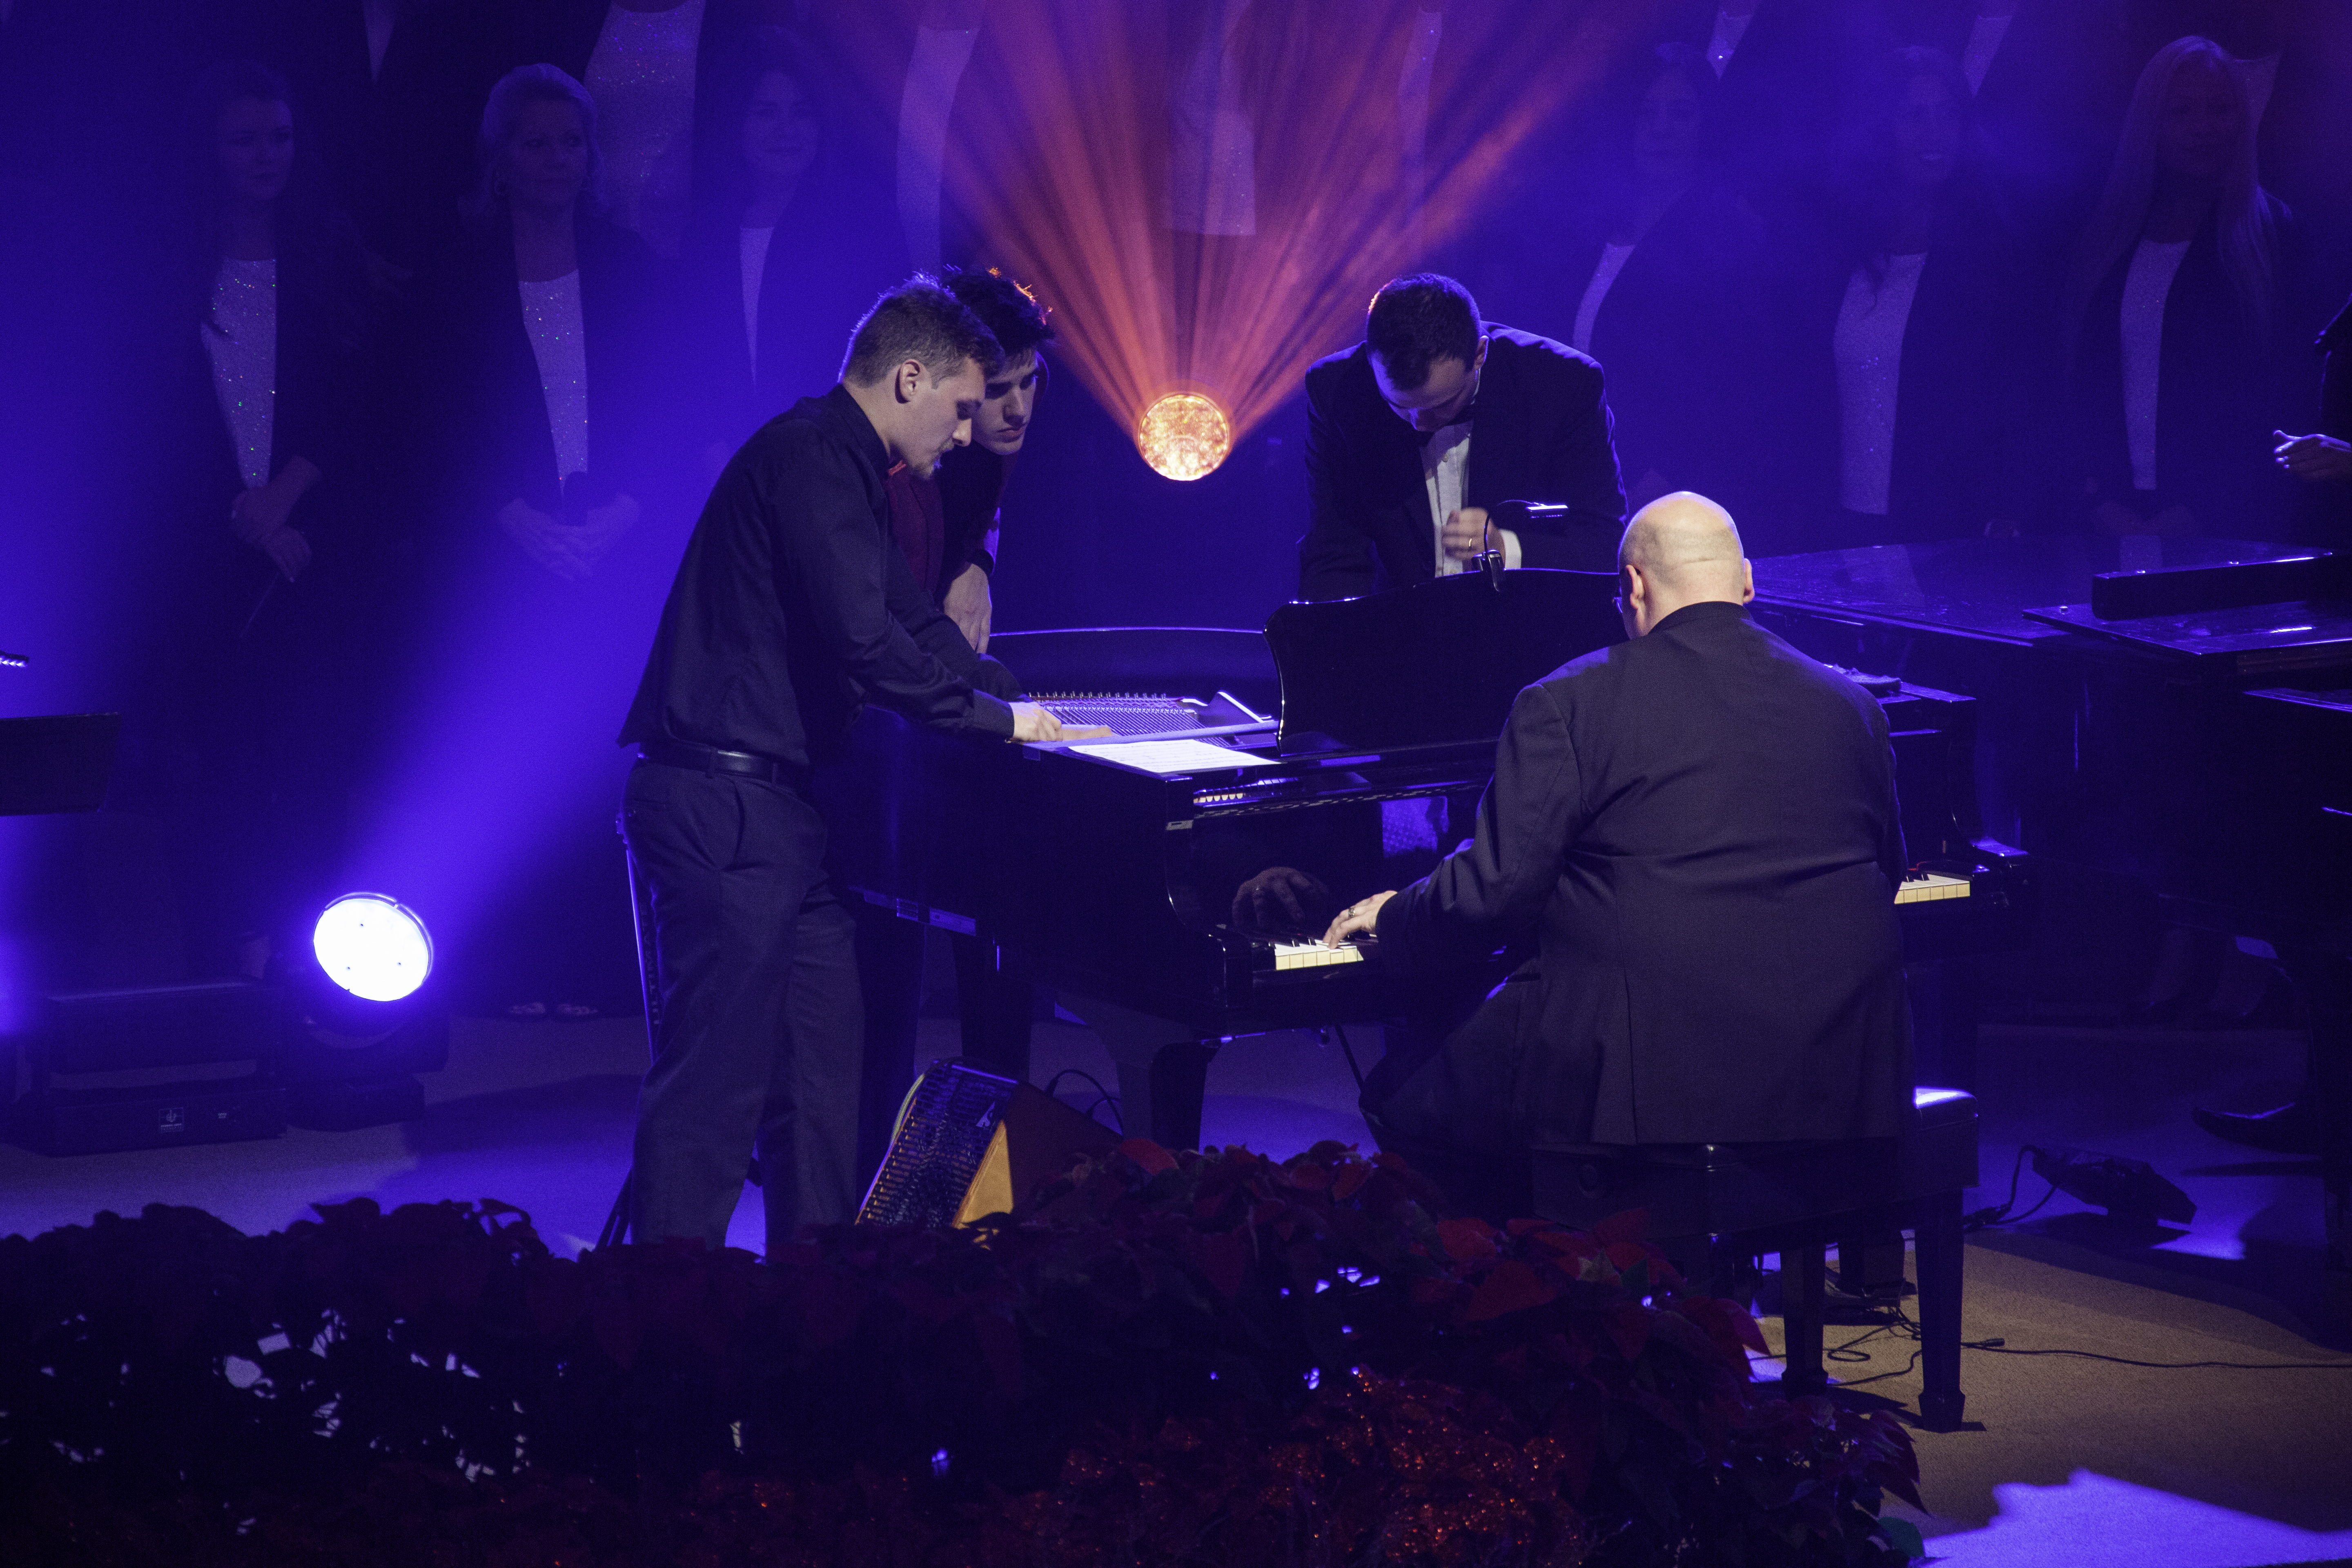 Performing at the Keyboard Festivel